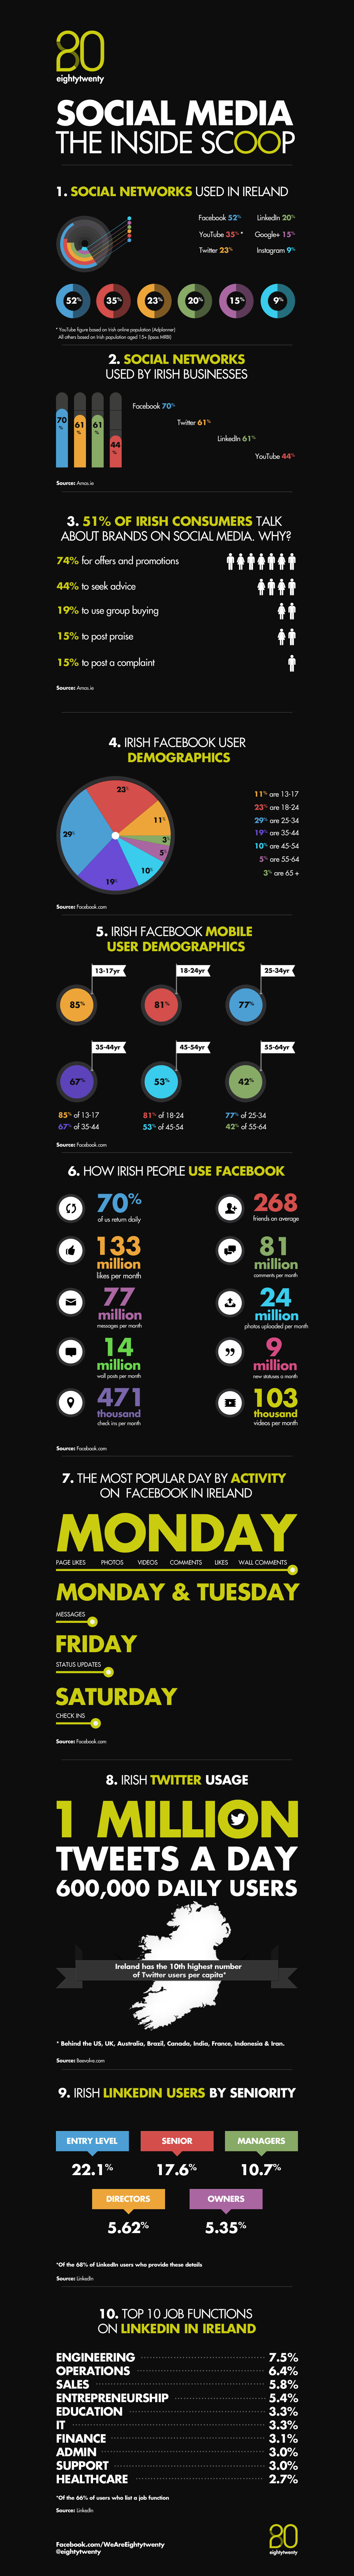 How the Irish use Twitter, Facebook and Google+